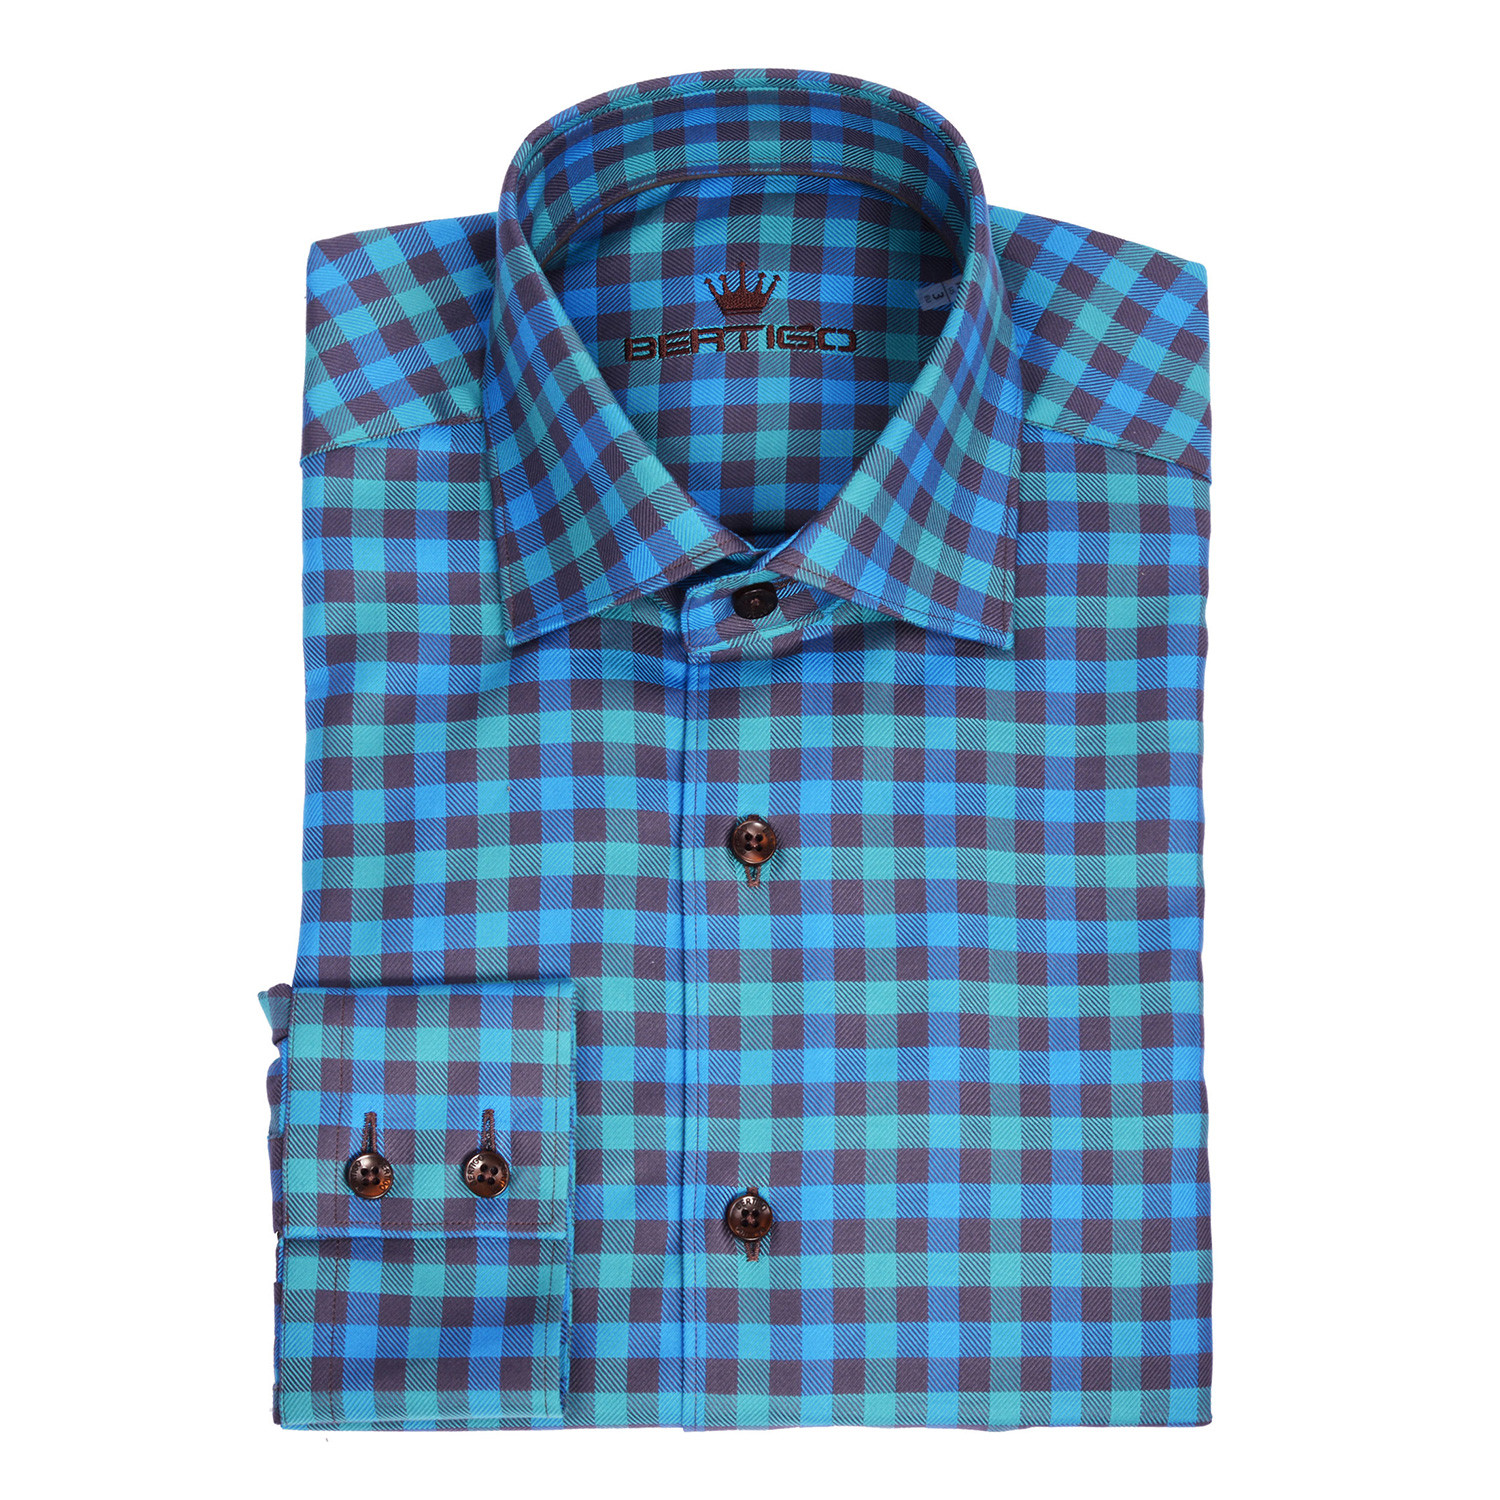 Martini Twill Button Up Shirt Turquoise Navy Blue